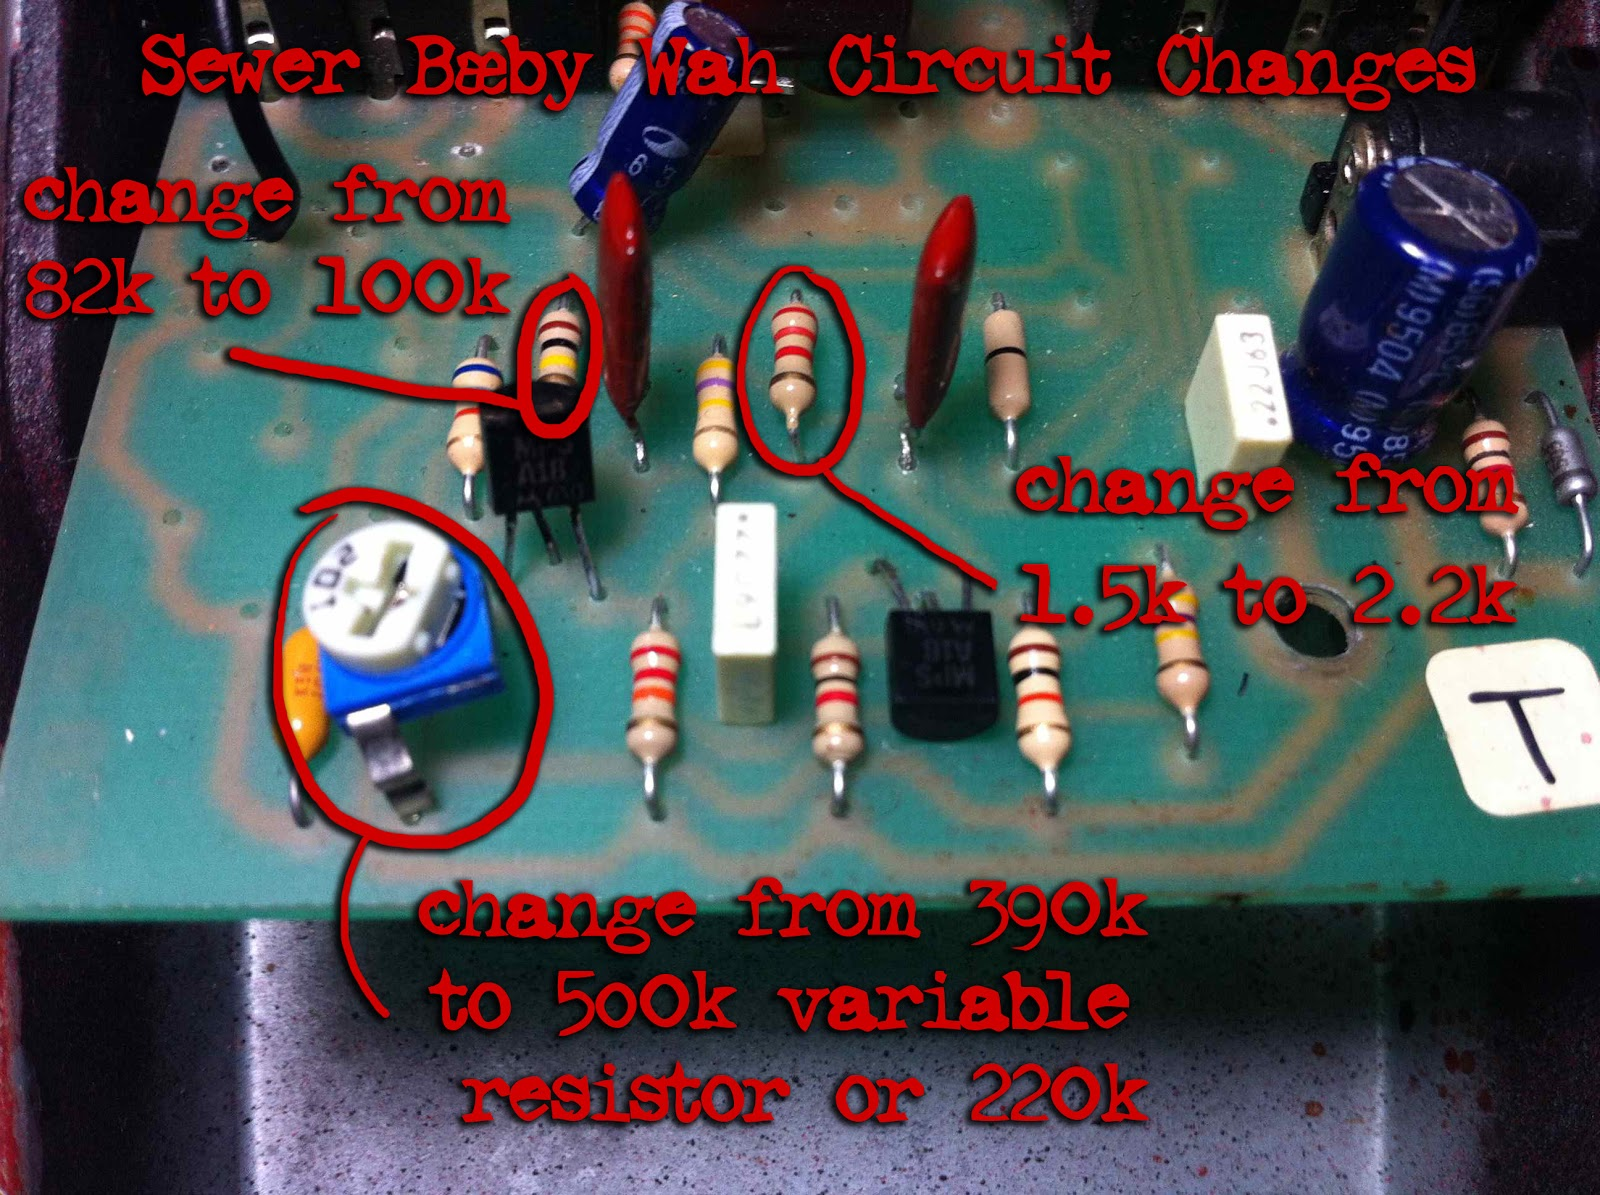 IMG_8309b sewer b�by part 2 gcb 95 crybaby mods doktor ross sewage crybaby gcb-95 wiring diagram at nearapp.co